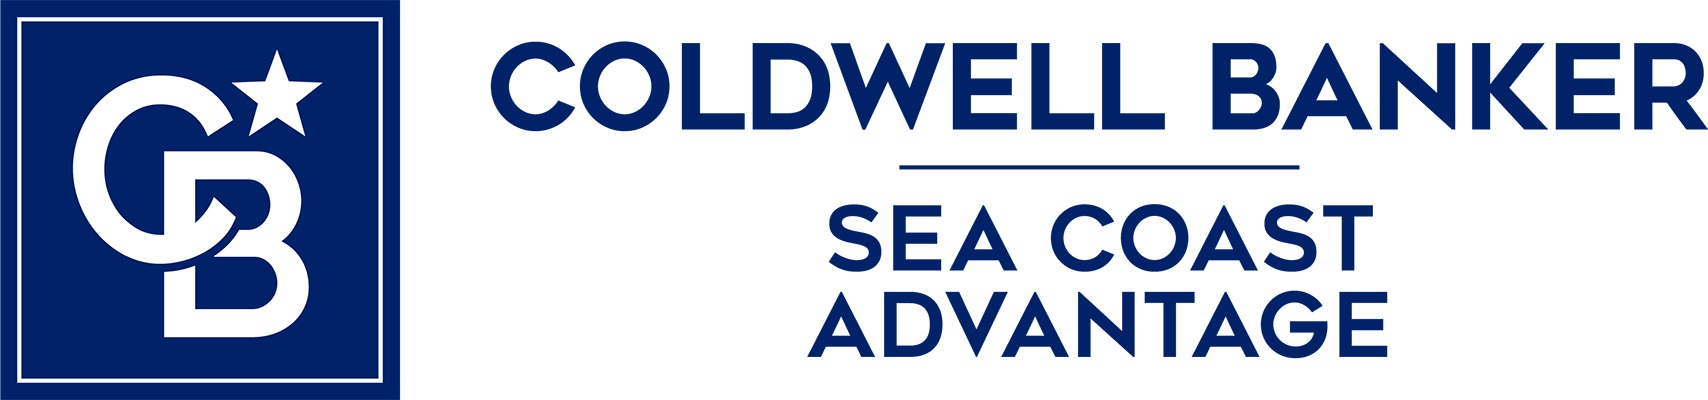 Jane Powell - Coldwell Banker Sea Coast Advantage Realty